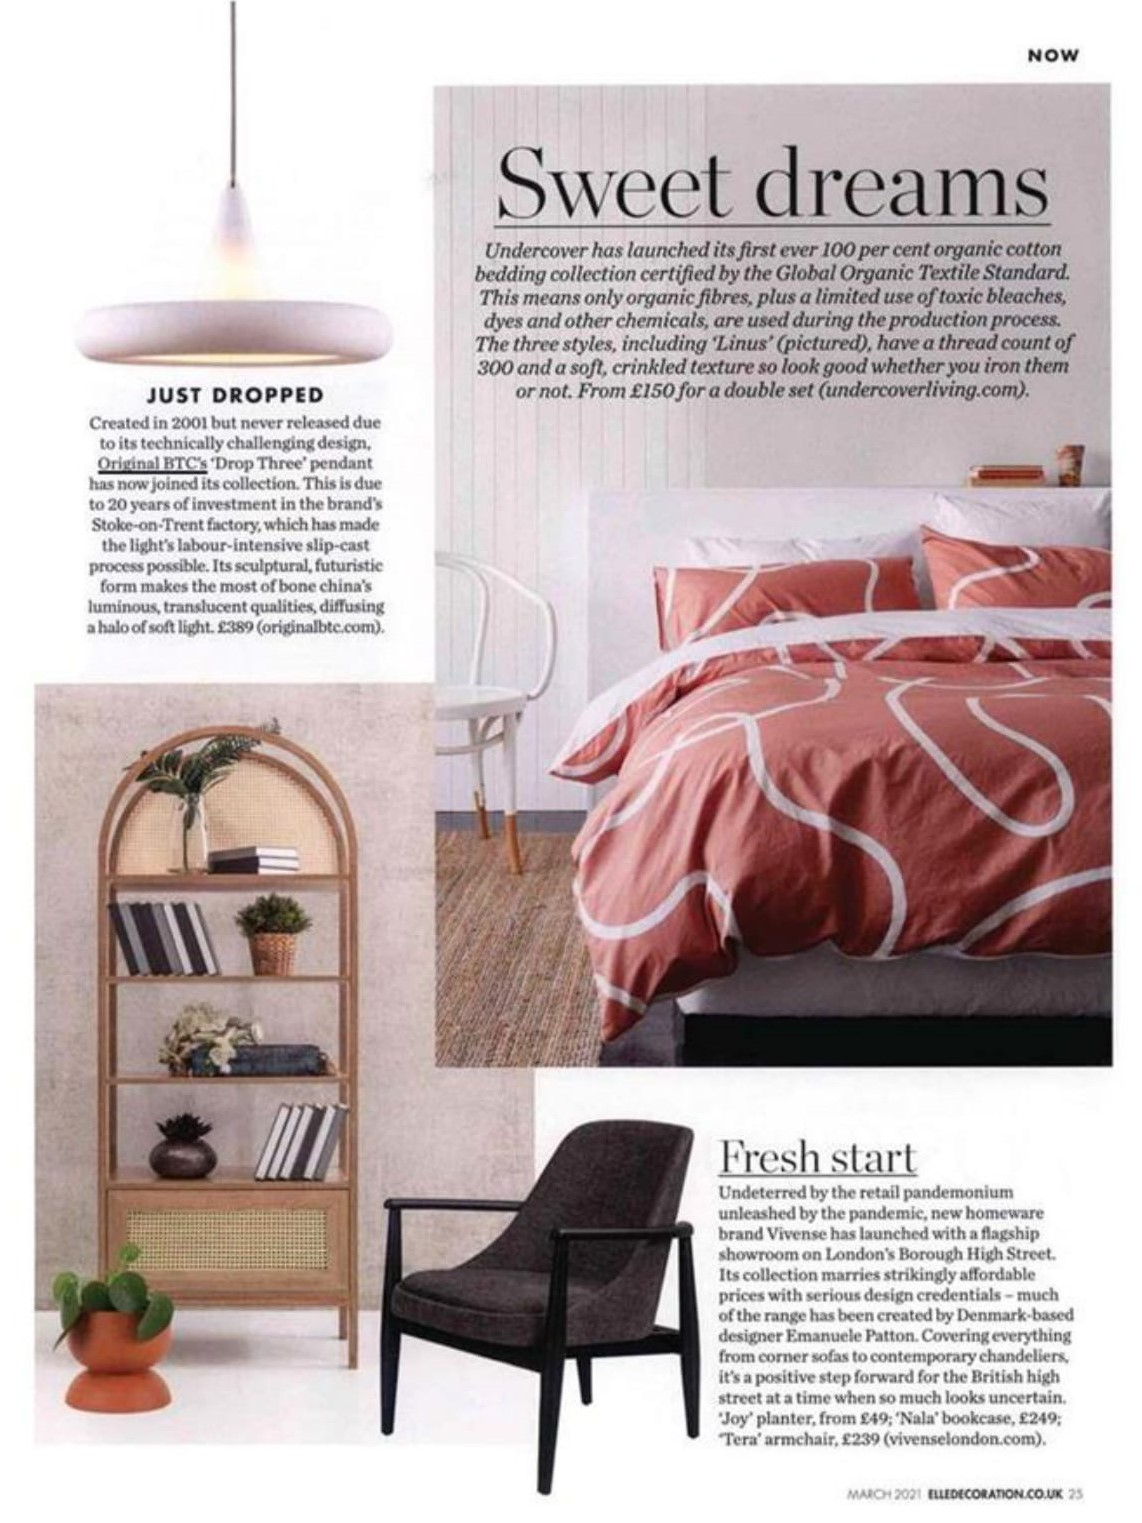 Just dropped! Original BTC's new Drop Three pendant is headline news in Elle Decoration